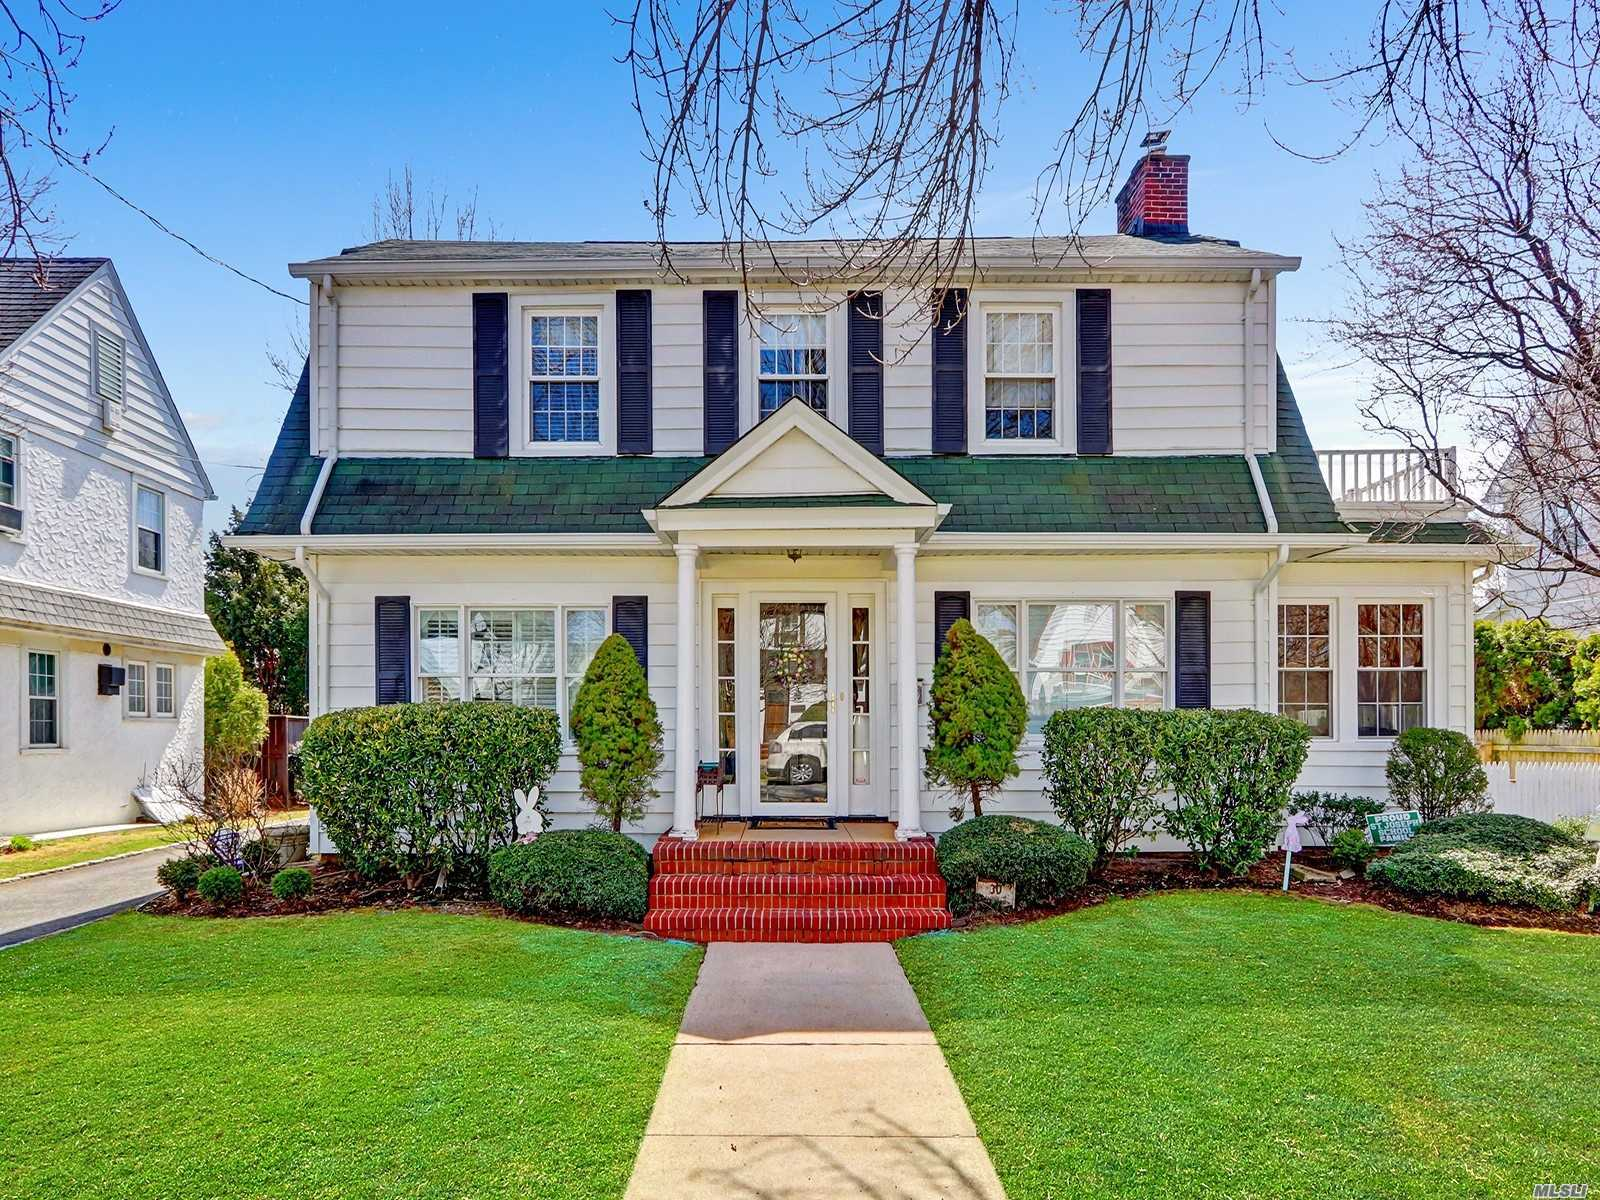 Desirable Dutch Colonial on Tree-Lined Street in the Heart of Cathedral Gardens. Perfect for Entertaining, New Kitchen, Updated Baths. Backyard is private with patio and 2-Car Detached Garage. CAC,  New Windows and Driveway.